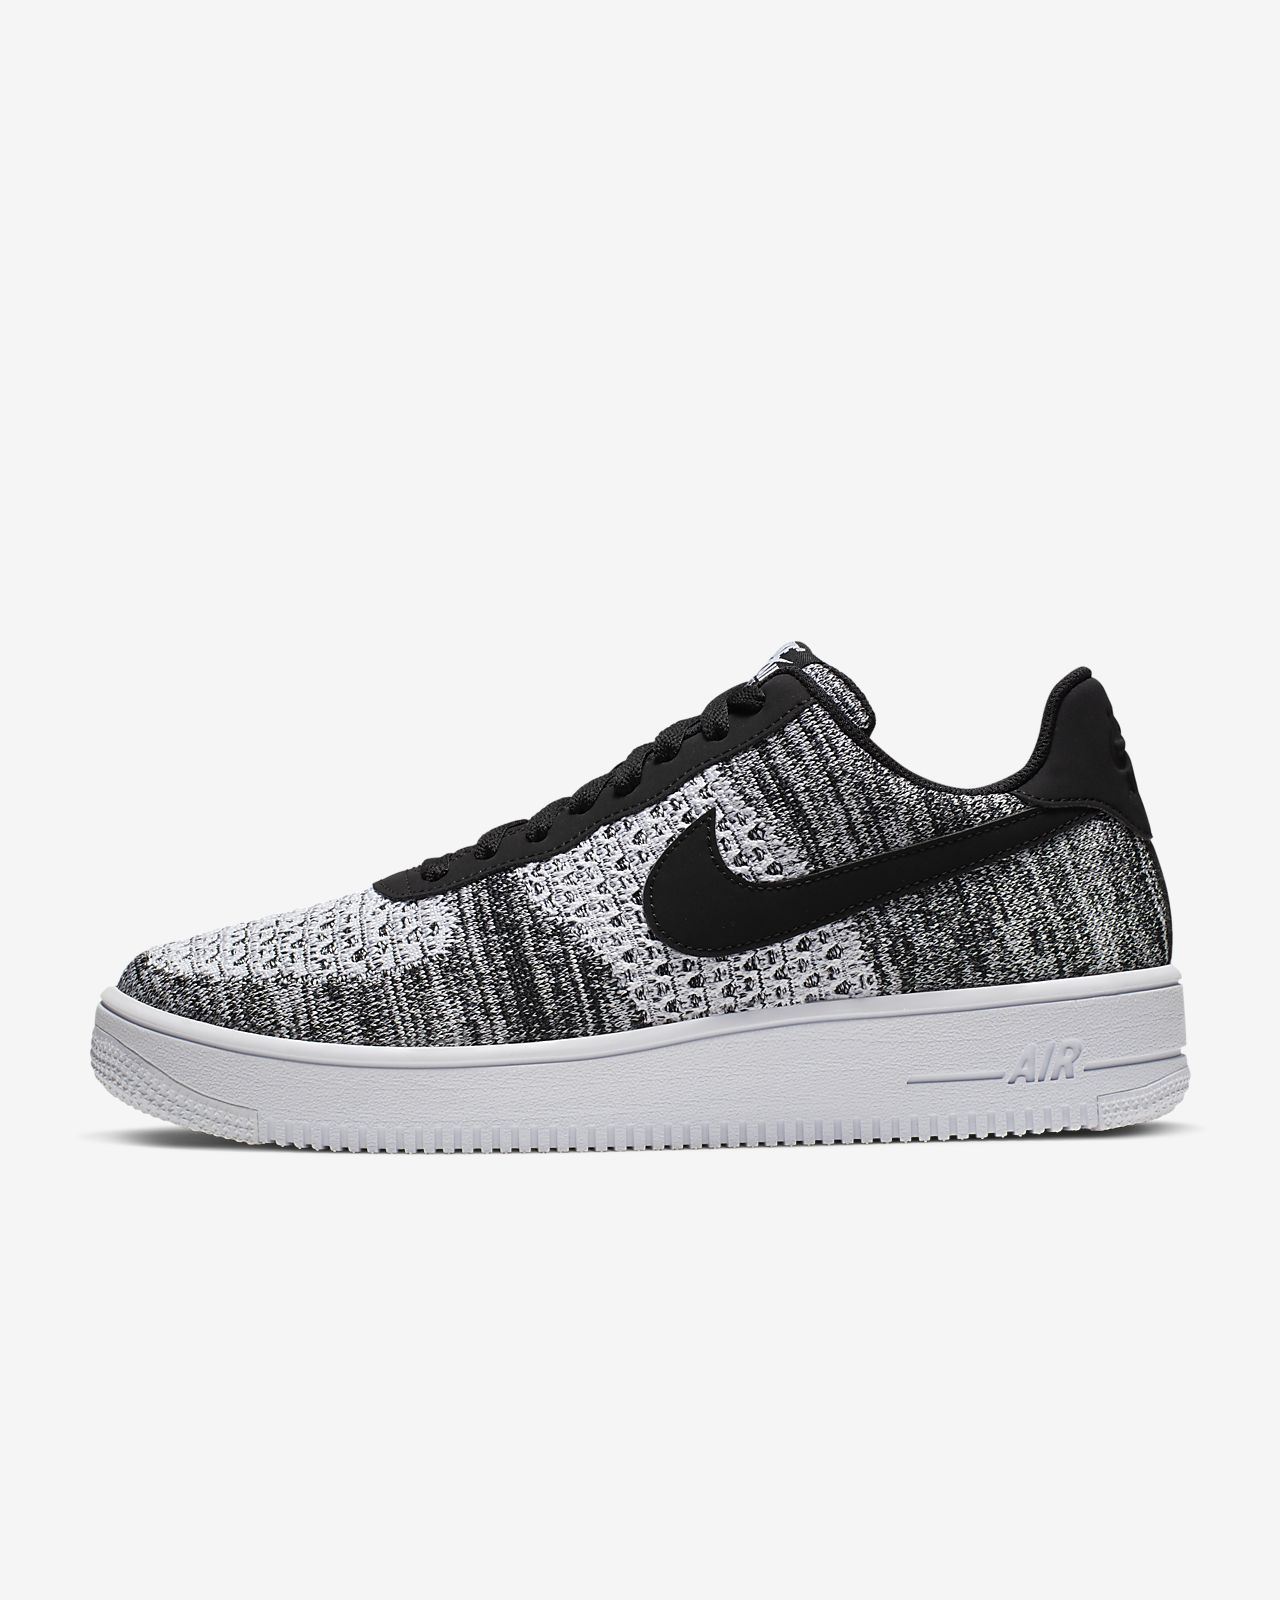 brand new ac8cd 55585 Nike Air Force 1 Flyknit 2.0 Men's Shoe. Nike.com CA